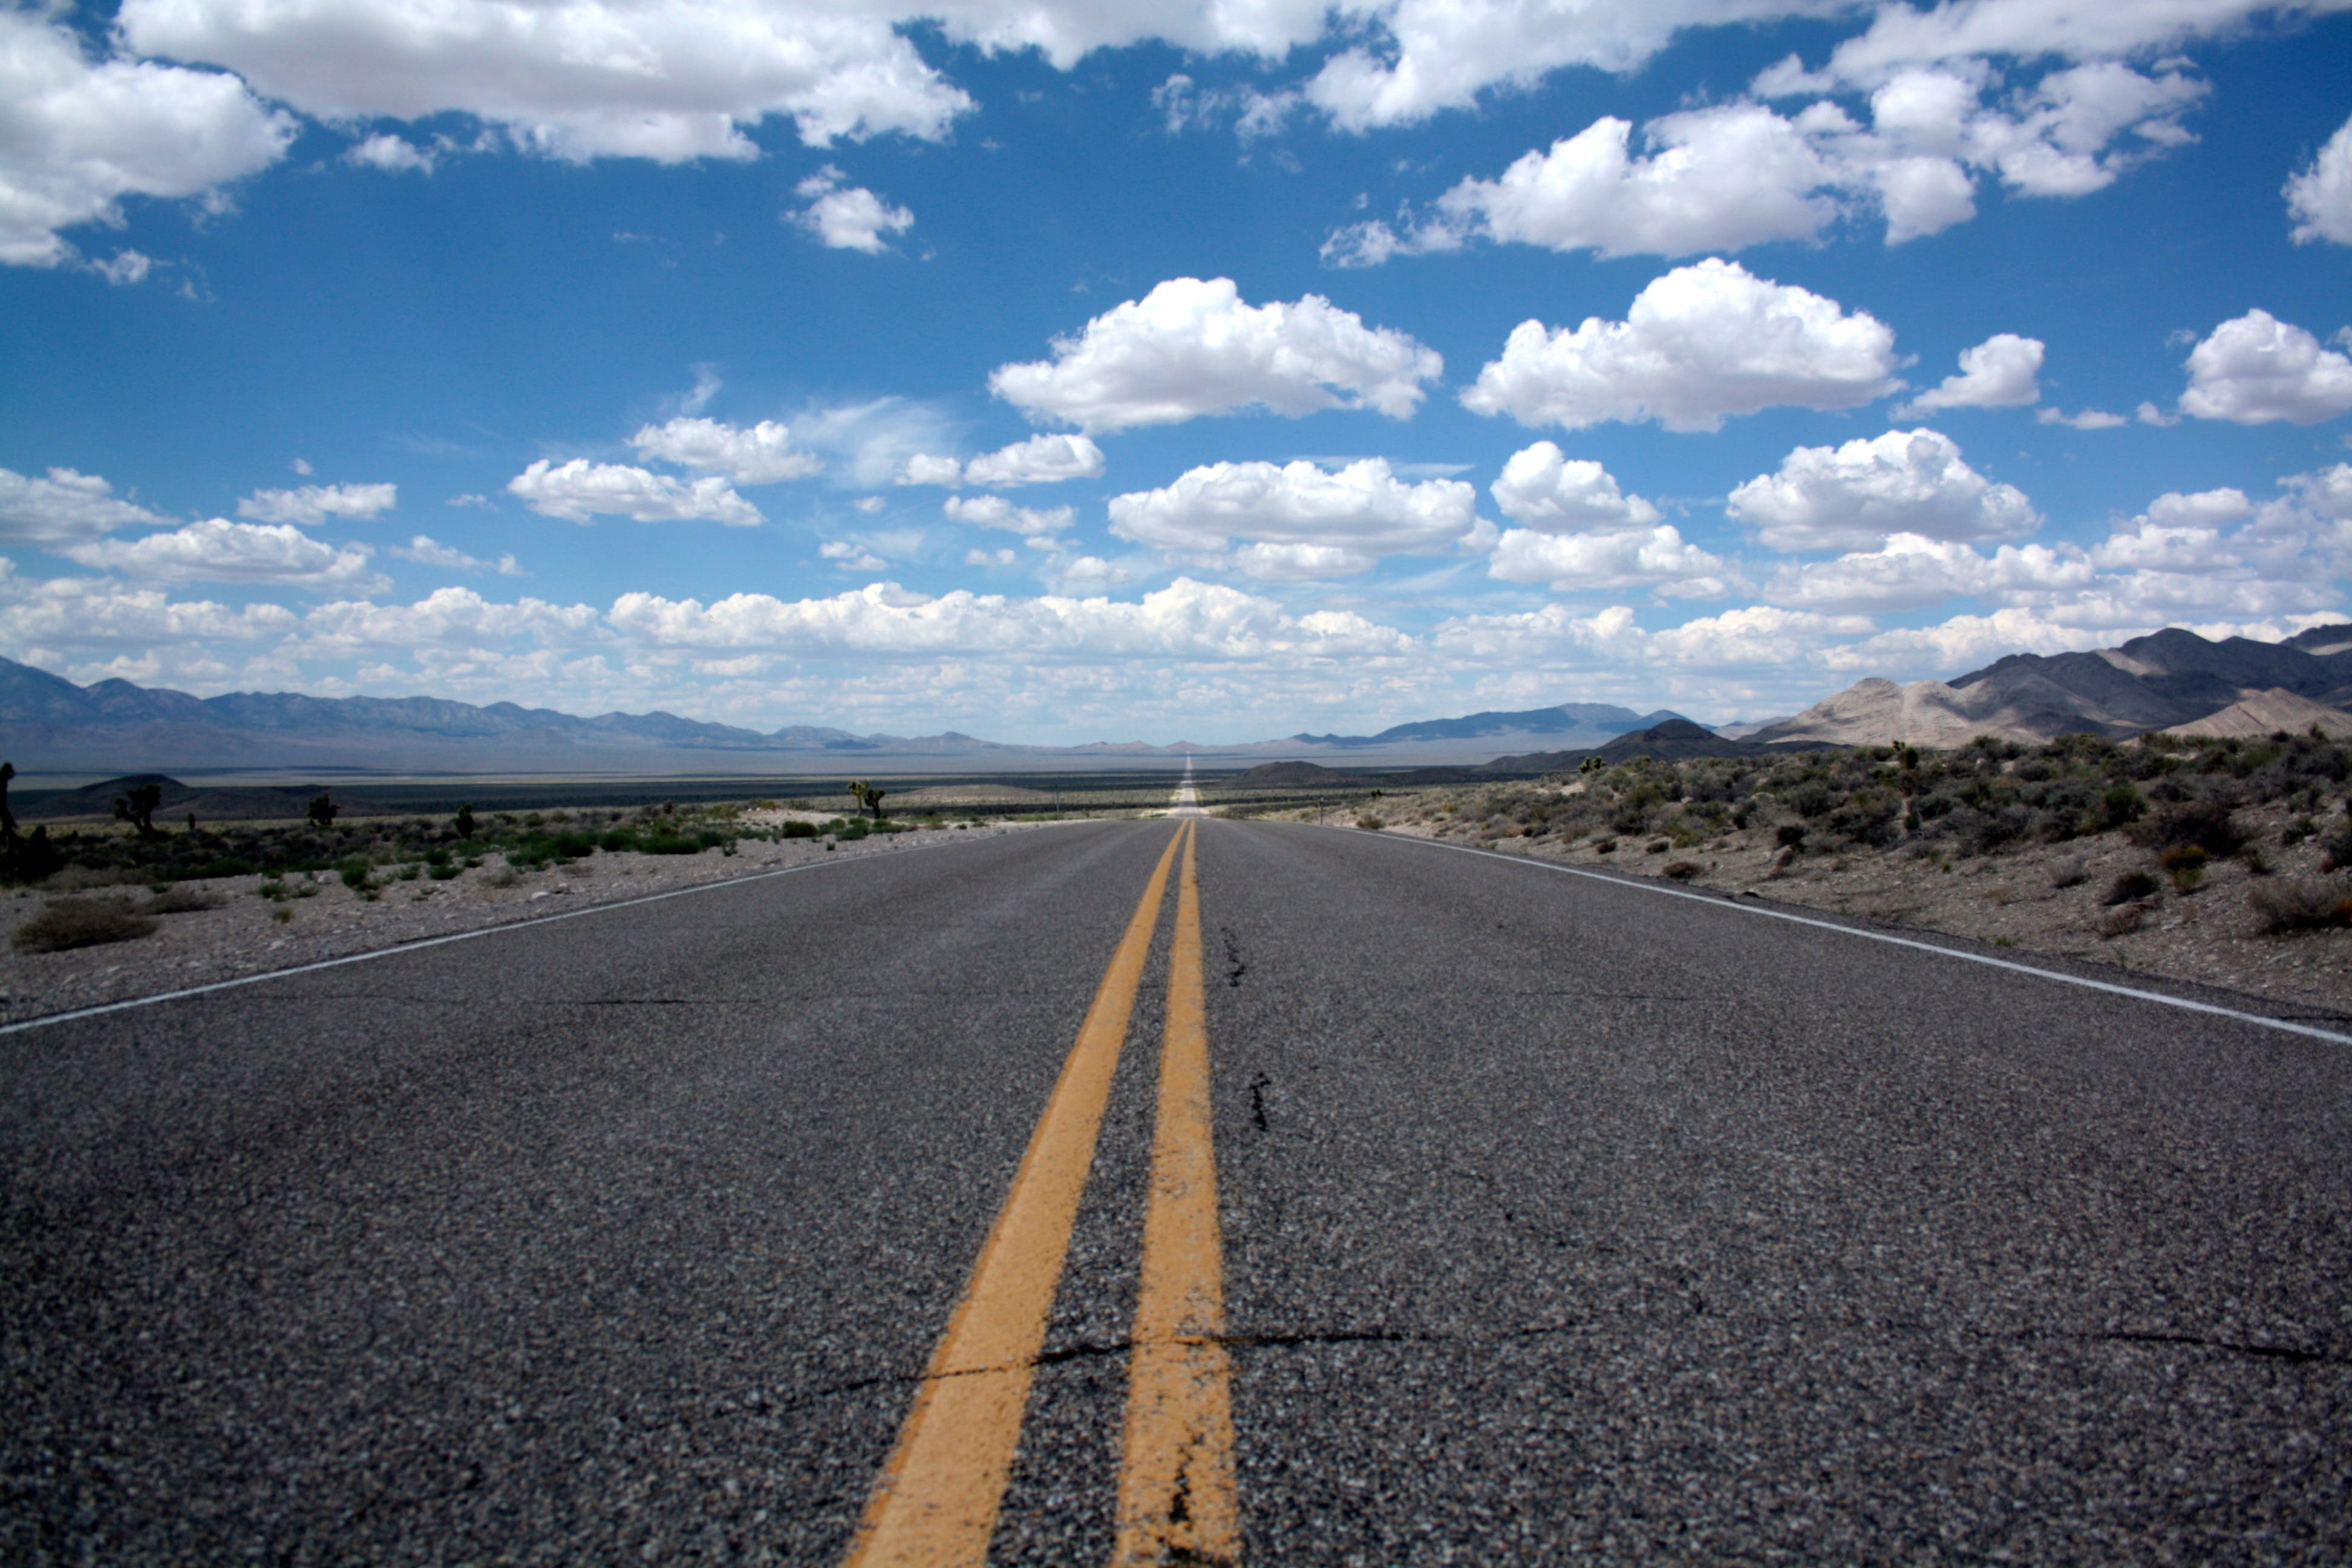 Black Top Road Under Clear Blue Cloudy Sky